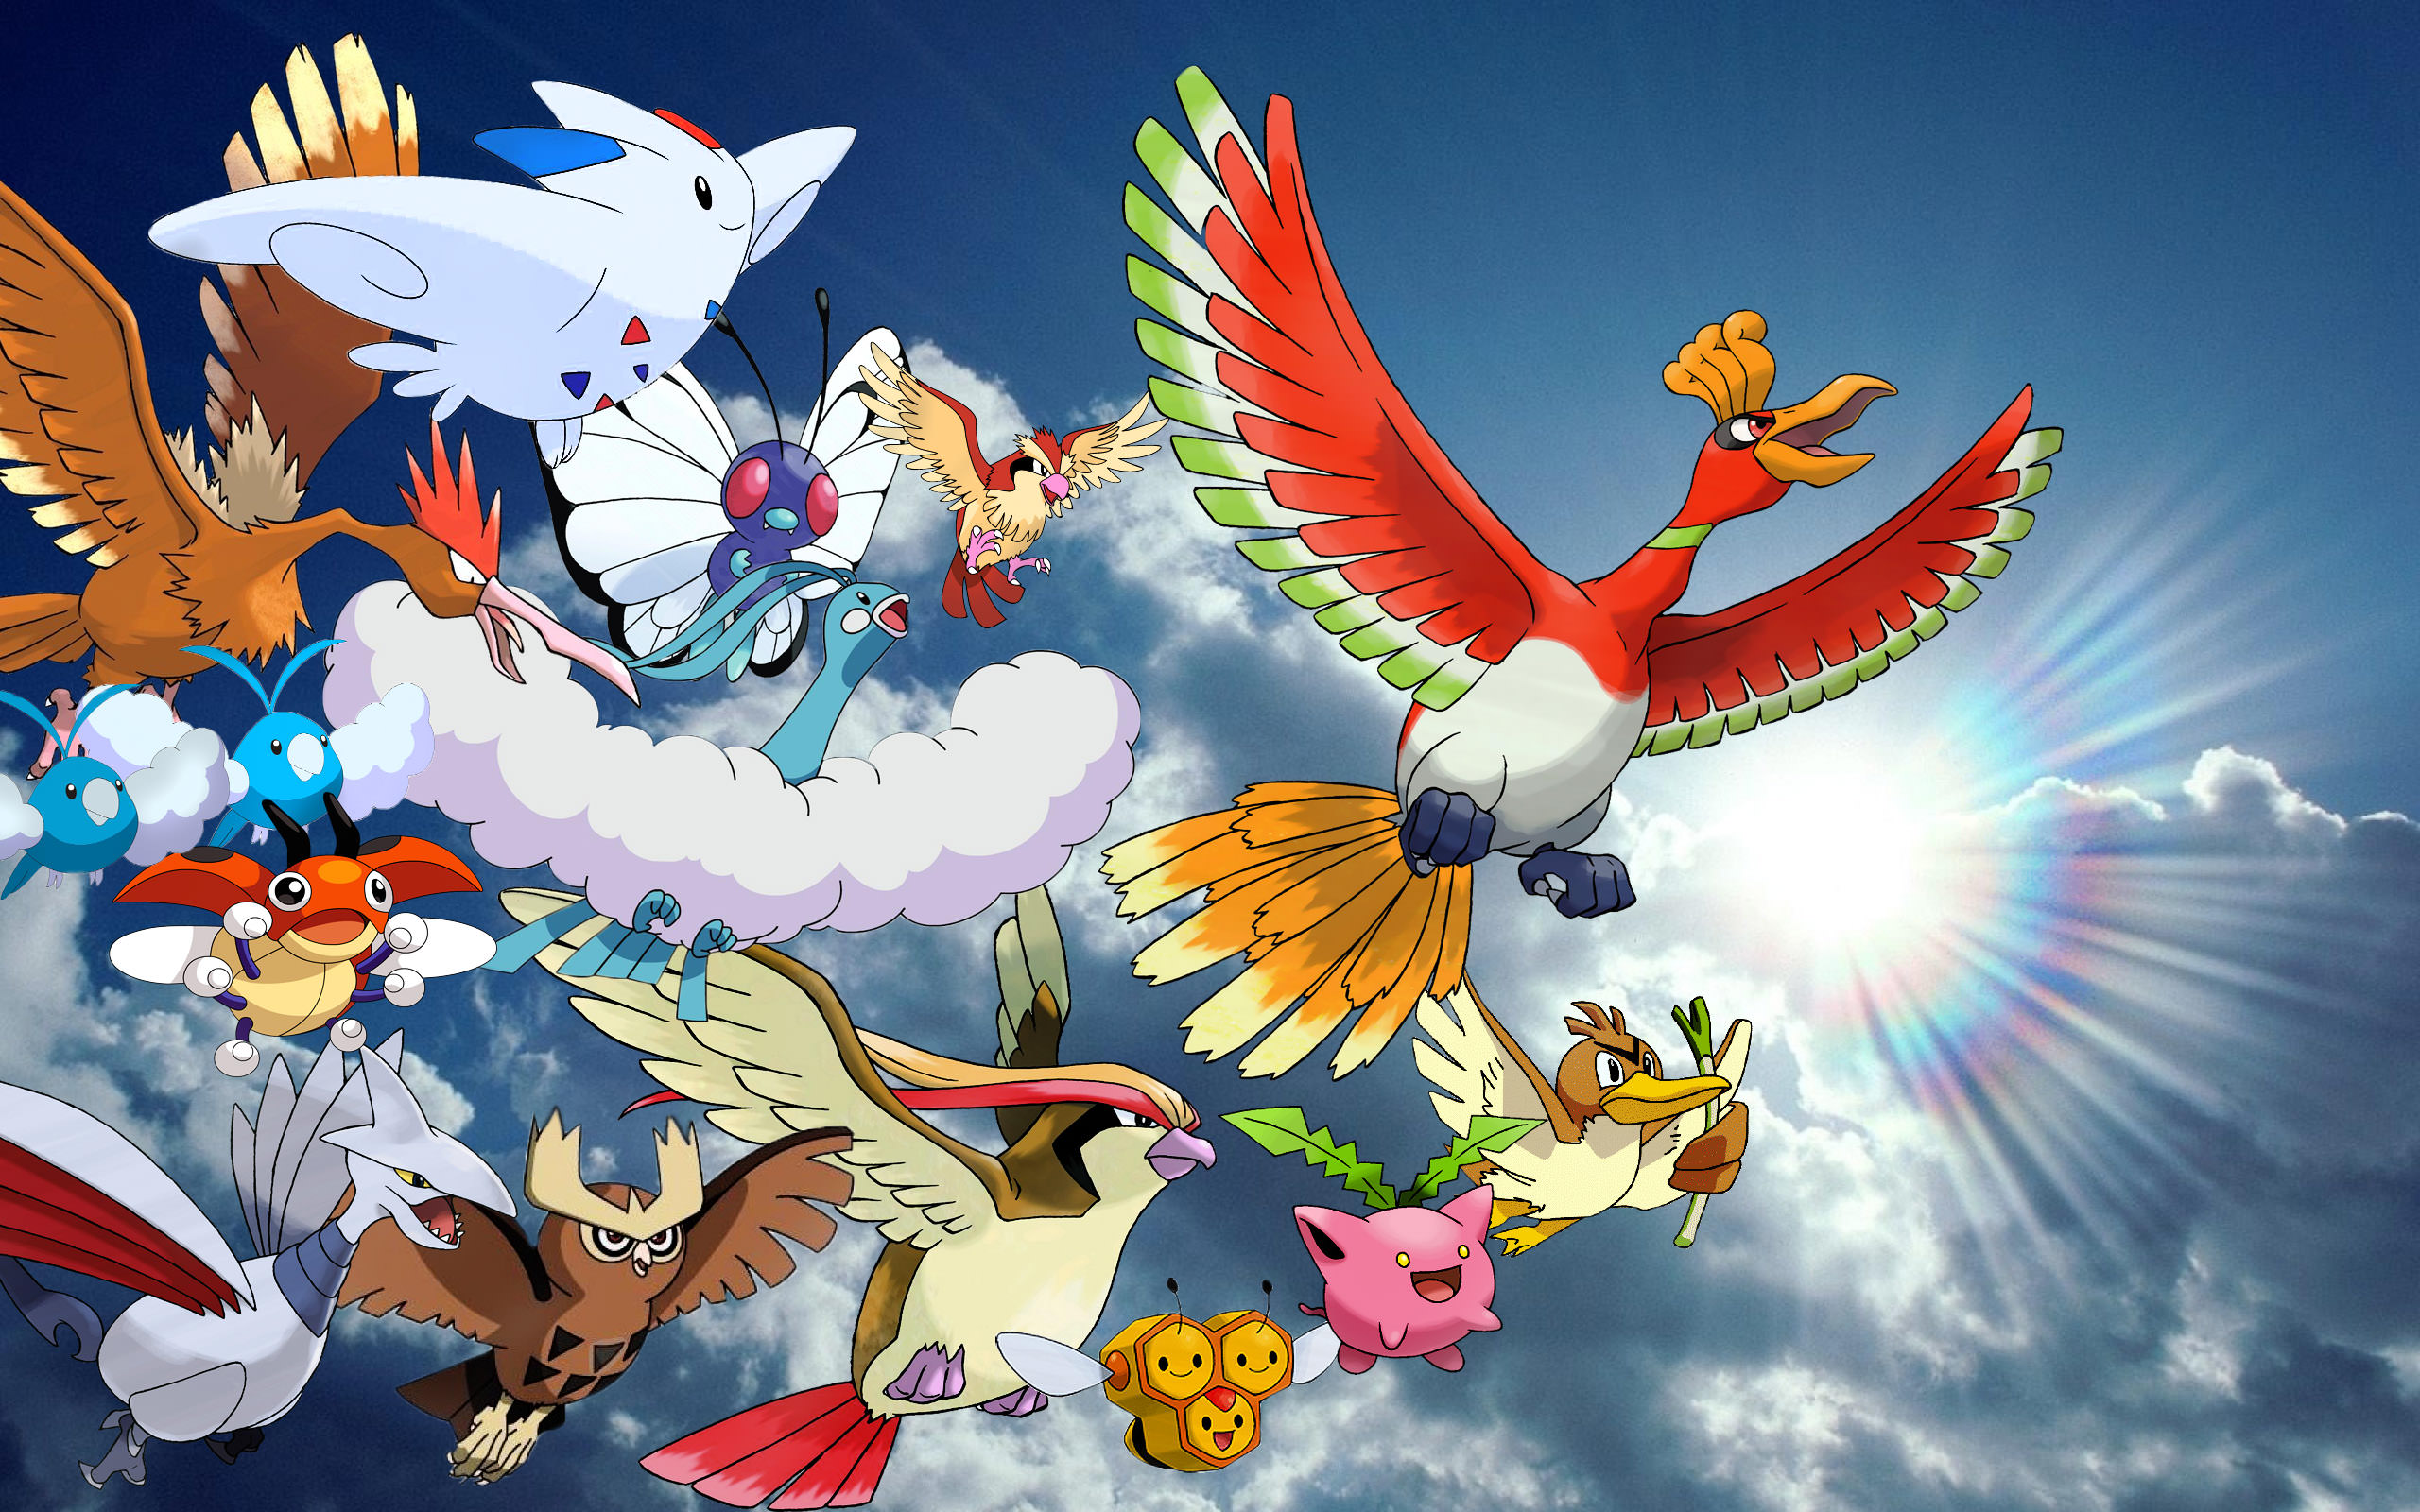 35 Crazy Pokemon Backgrounds Wallpapers Images Pictures Design Trends